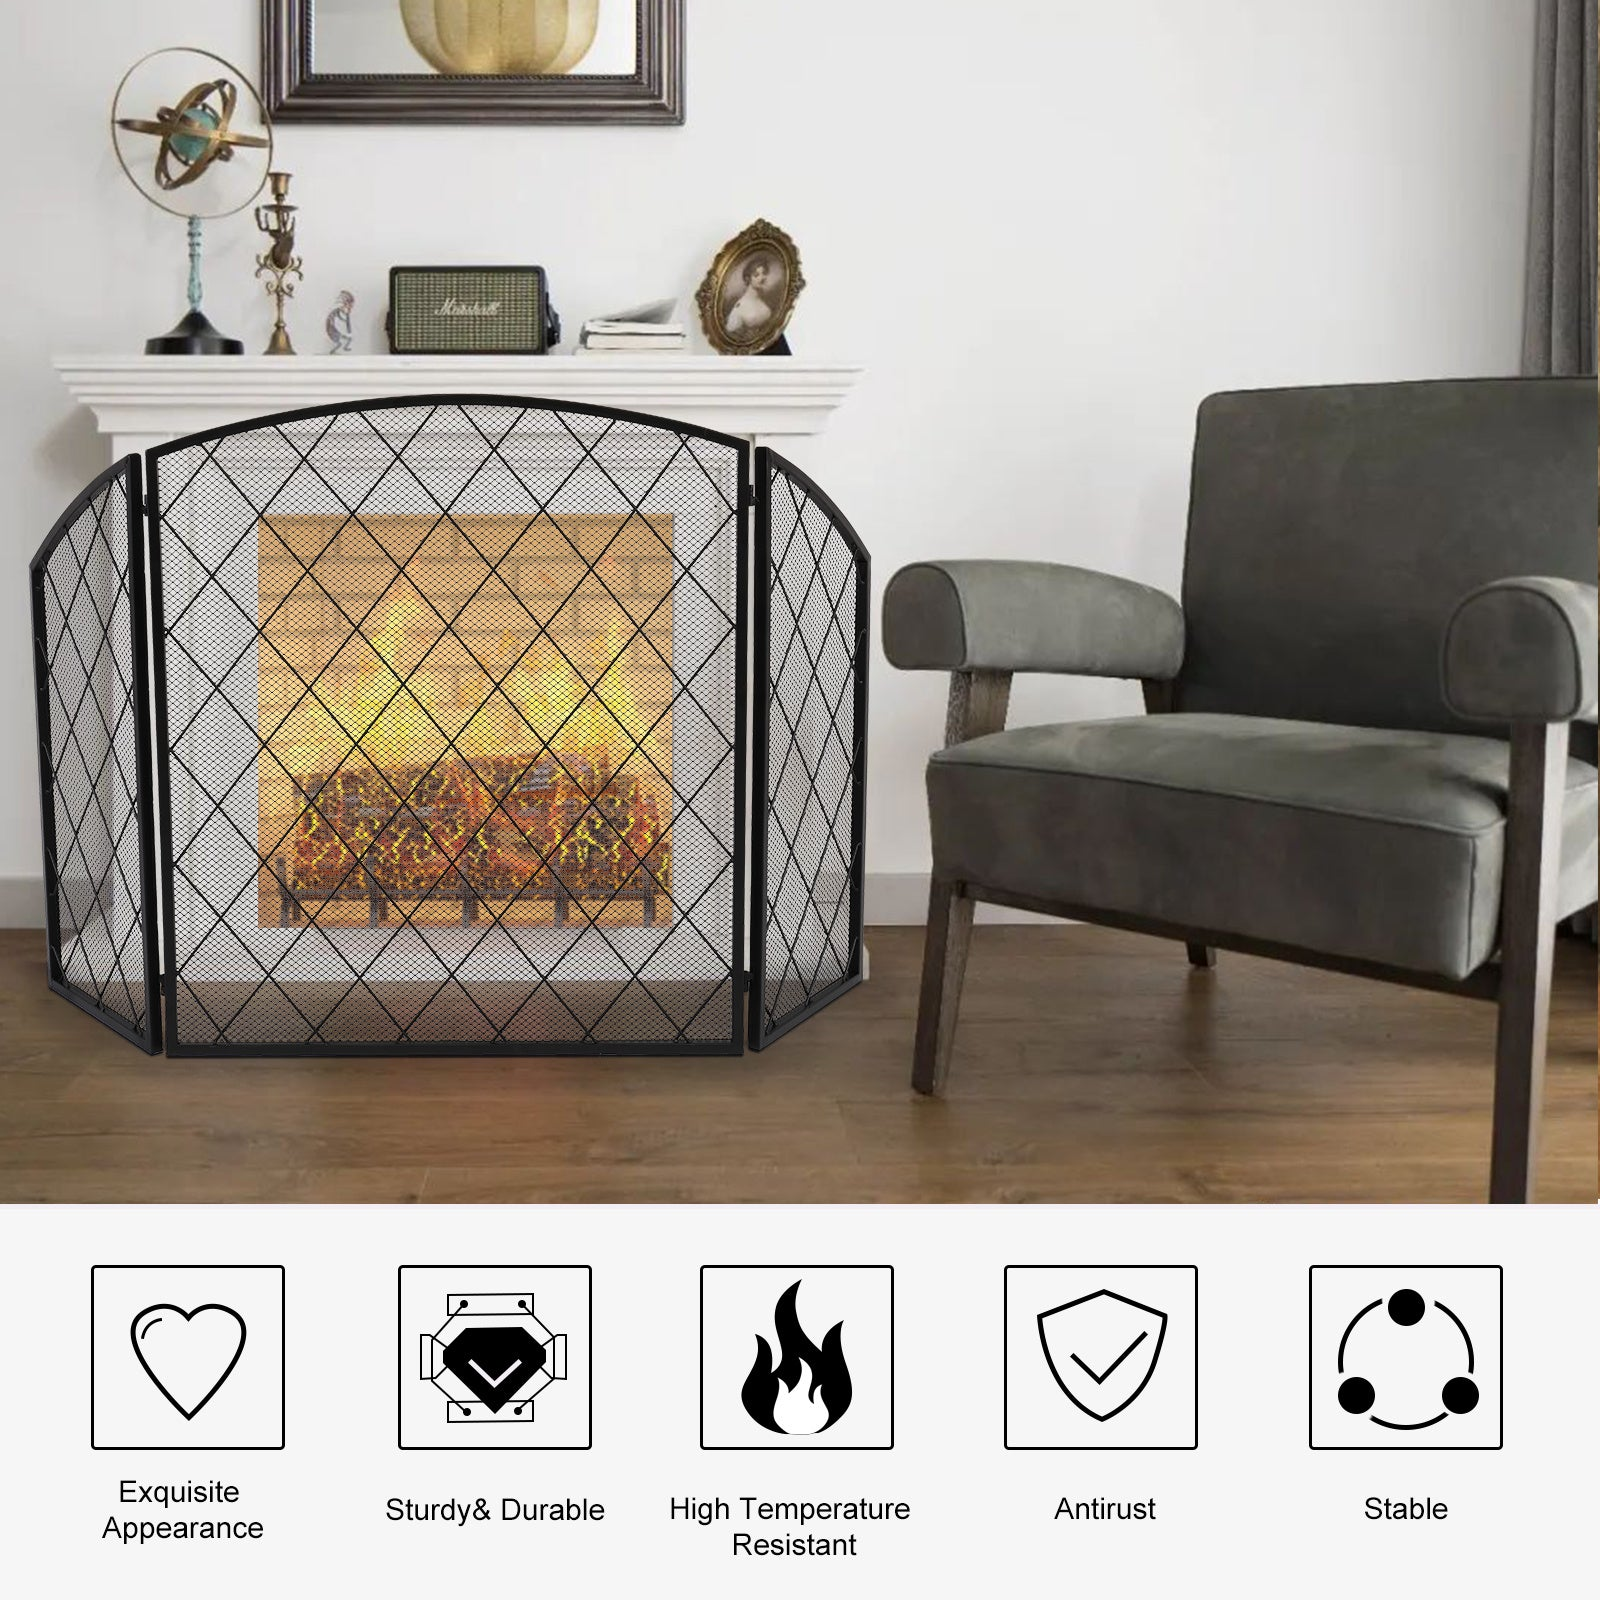 3-Panel 50x30in Wrought Iron Decorative Mesh Fireplace Screen Gate Protector Black